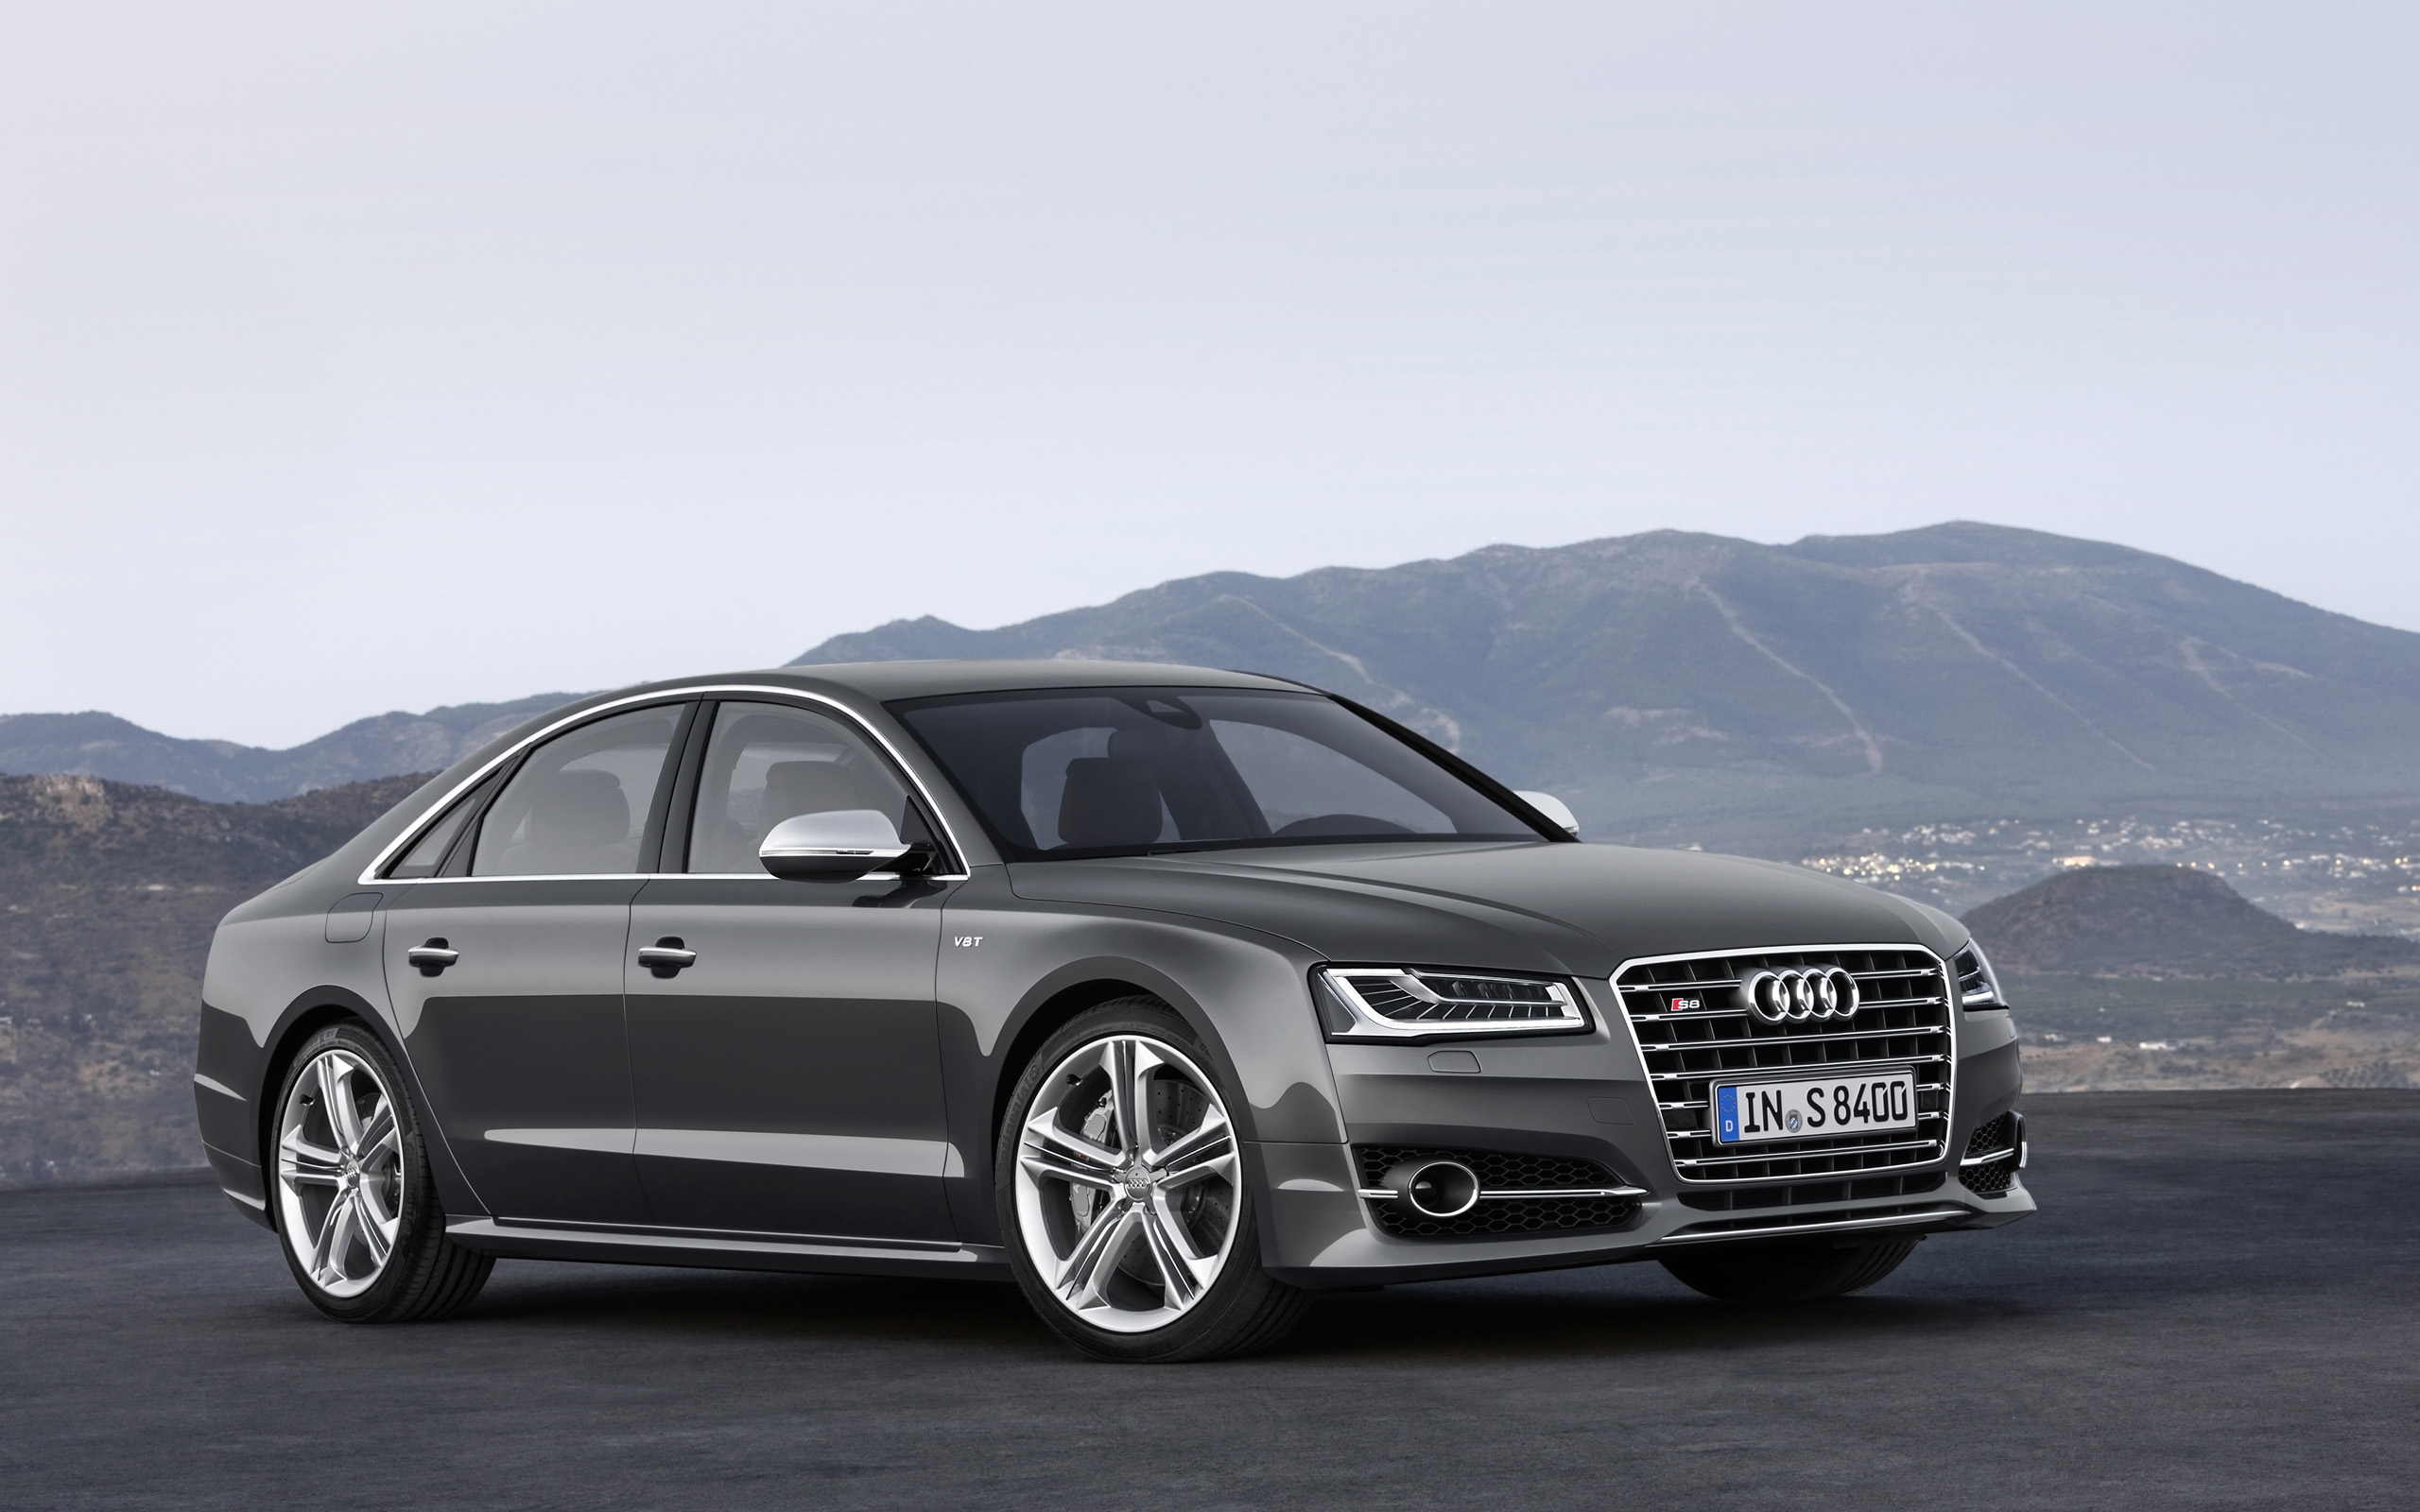 Audi S8 Wallpapers Desktop 2560x1600 px   4USkY 2560x1600